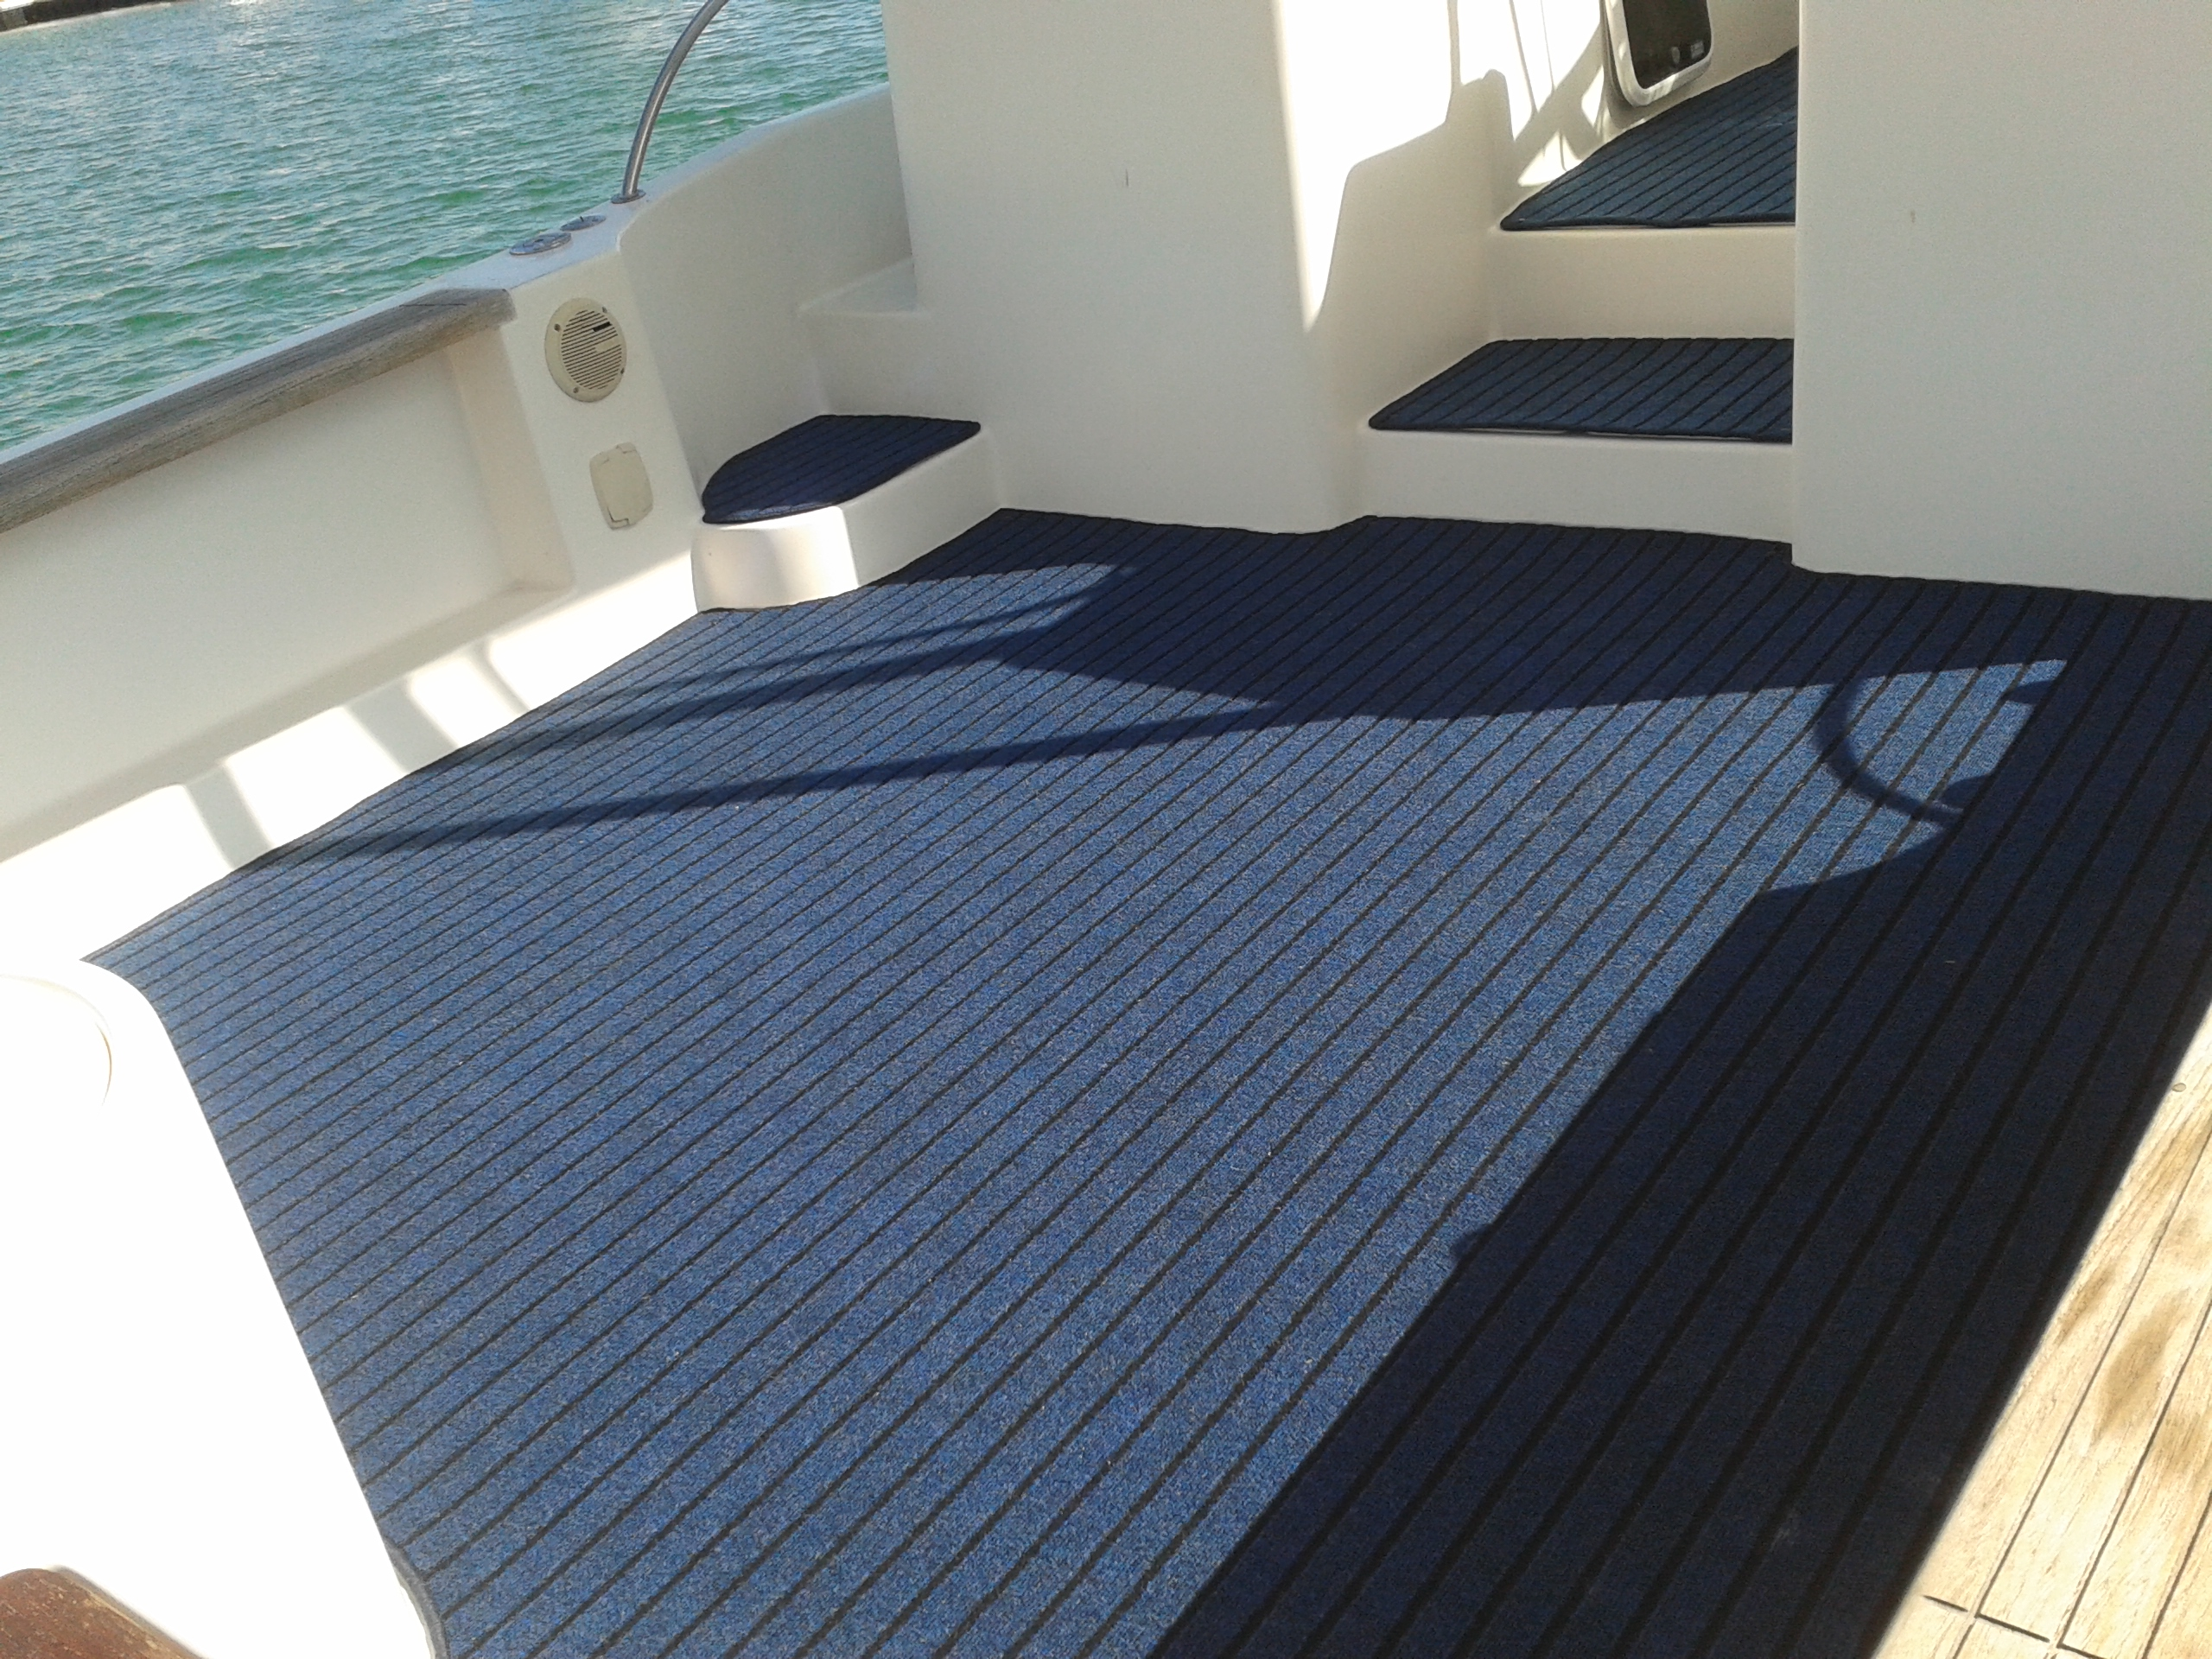 Carpet Fitting Cost >> Boat Carpet | Prestige Marine Trimmers, Boat Covers Perth ...